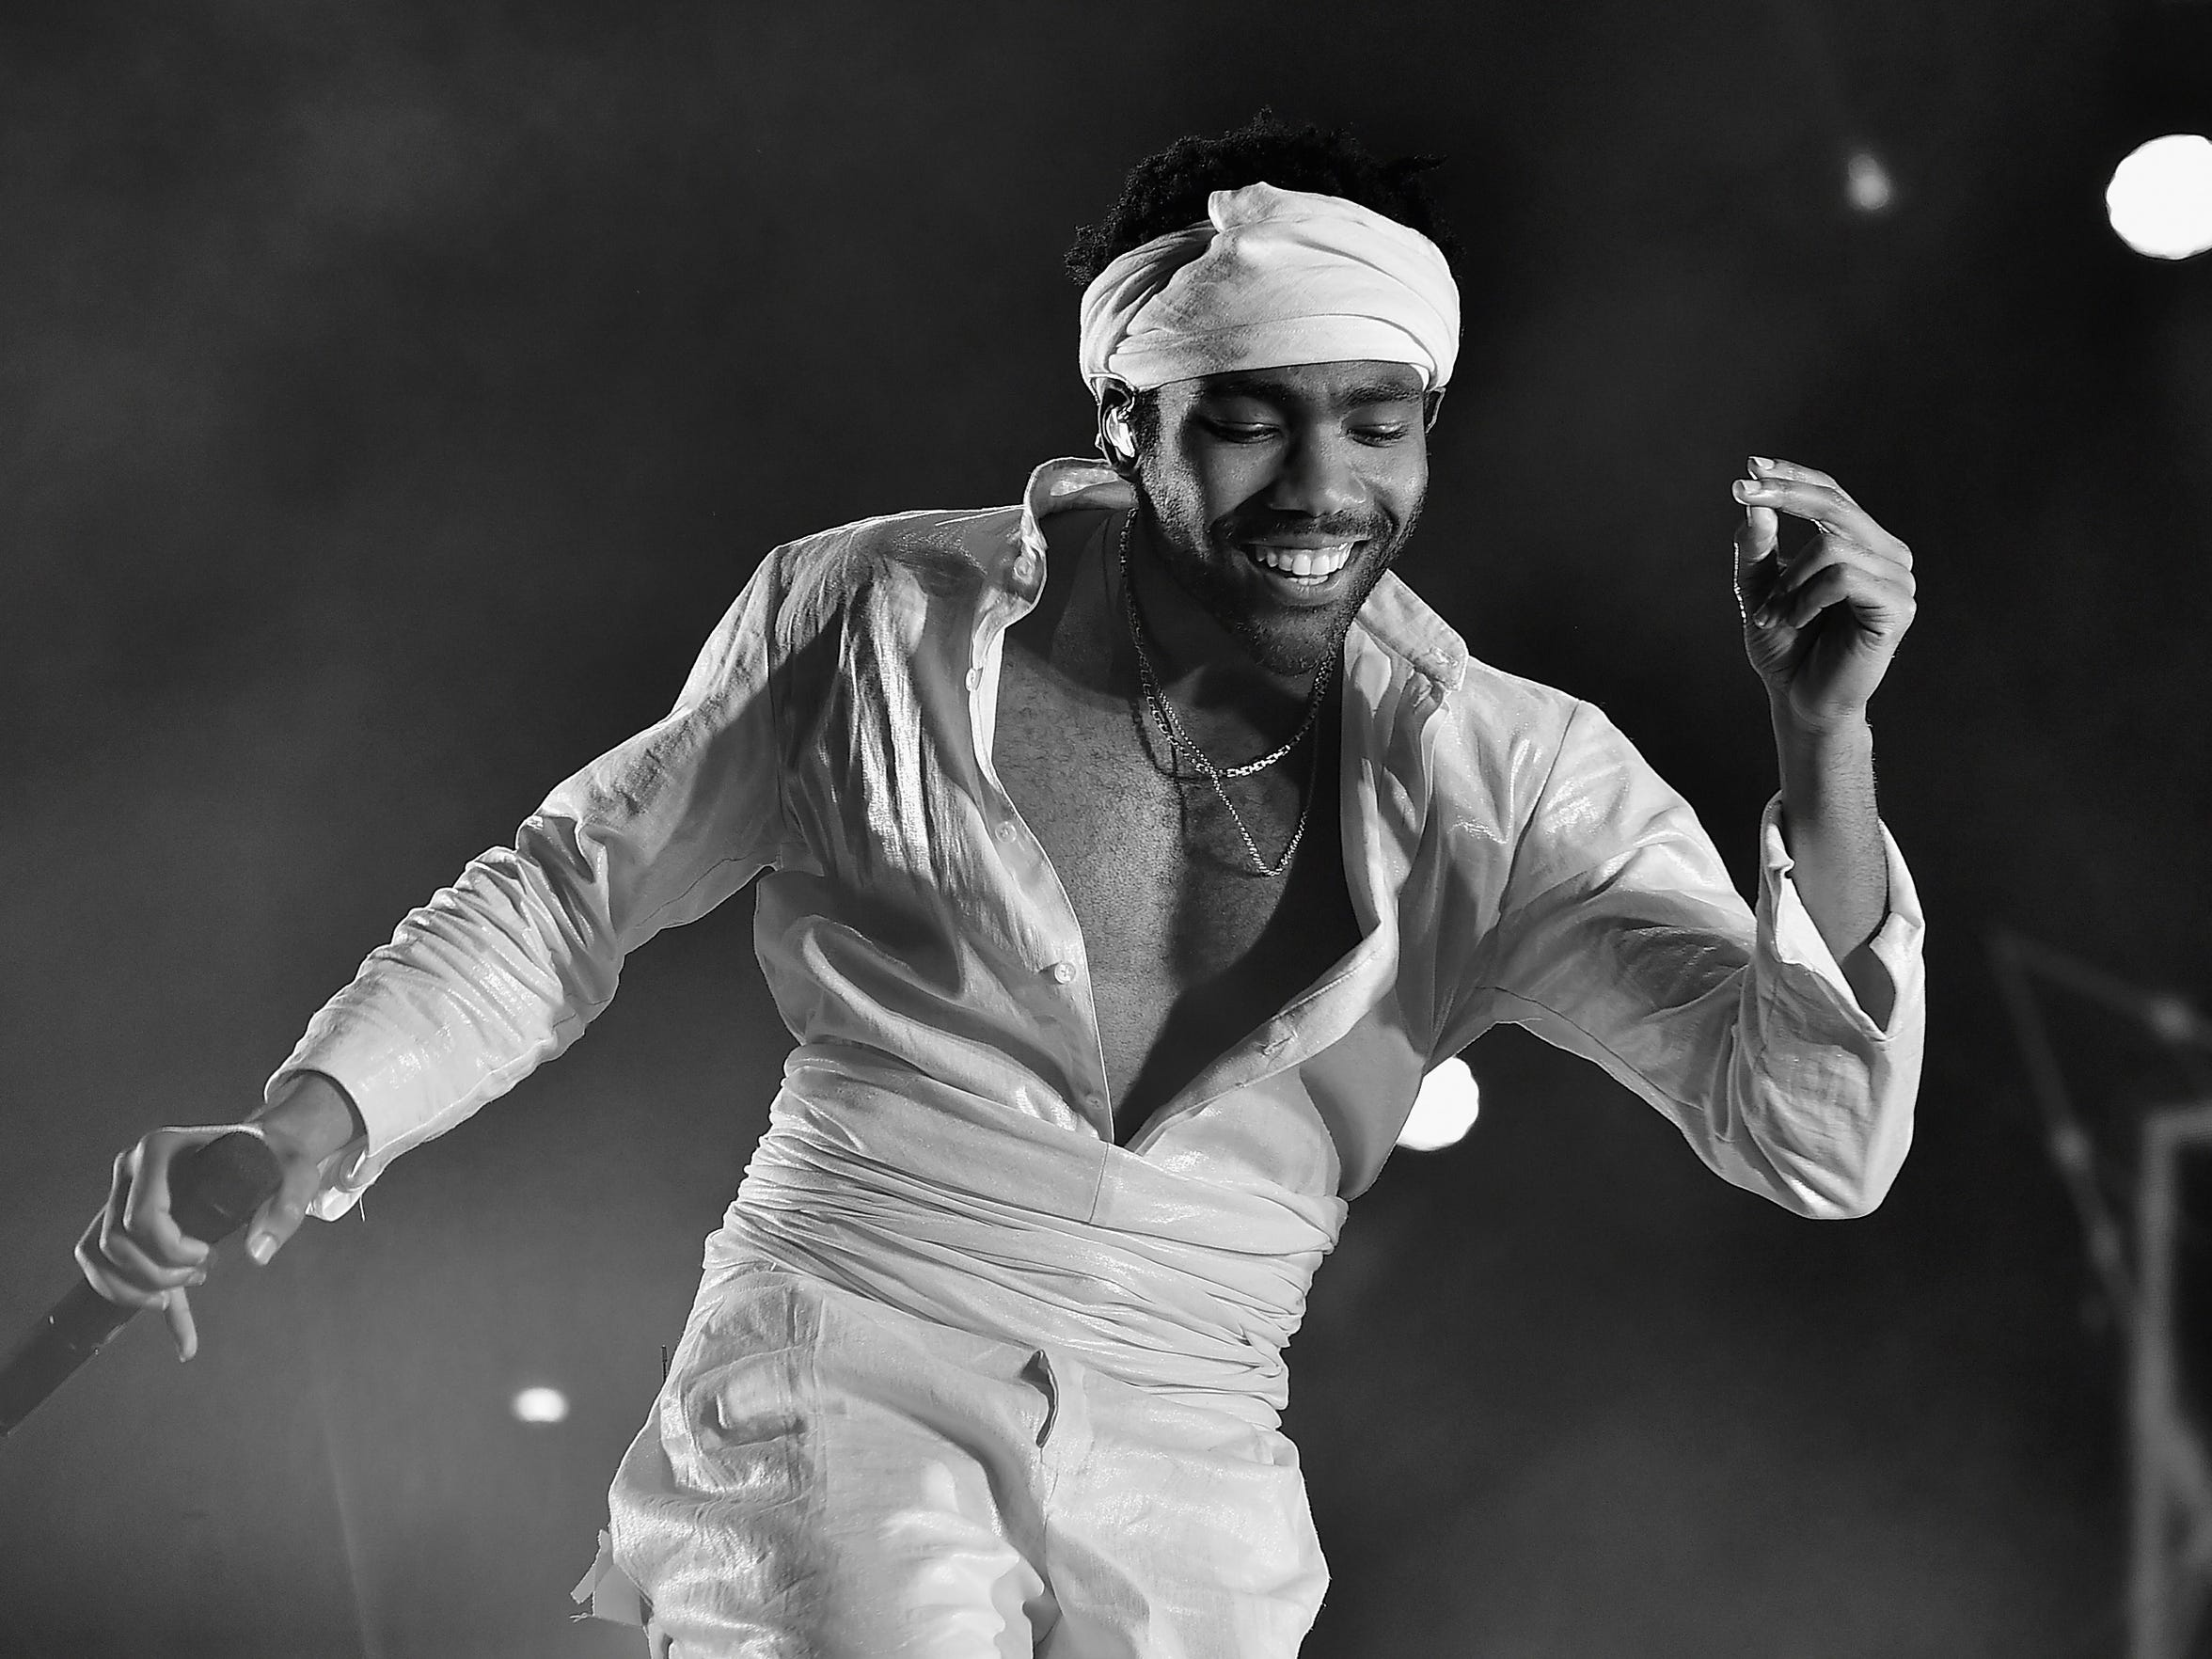 Childish Gambino performs onstage during the 2017 Governors